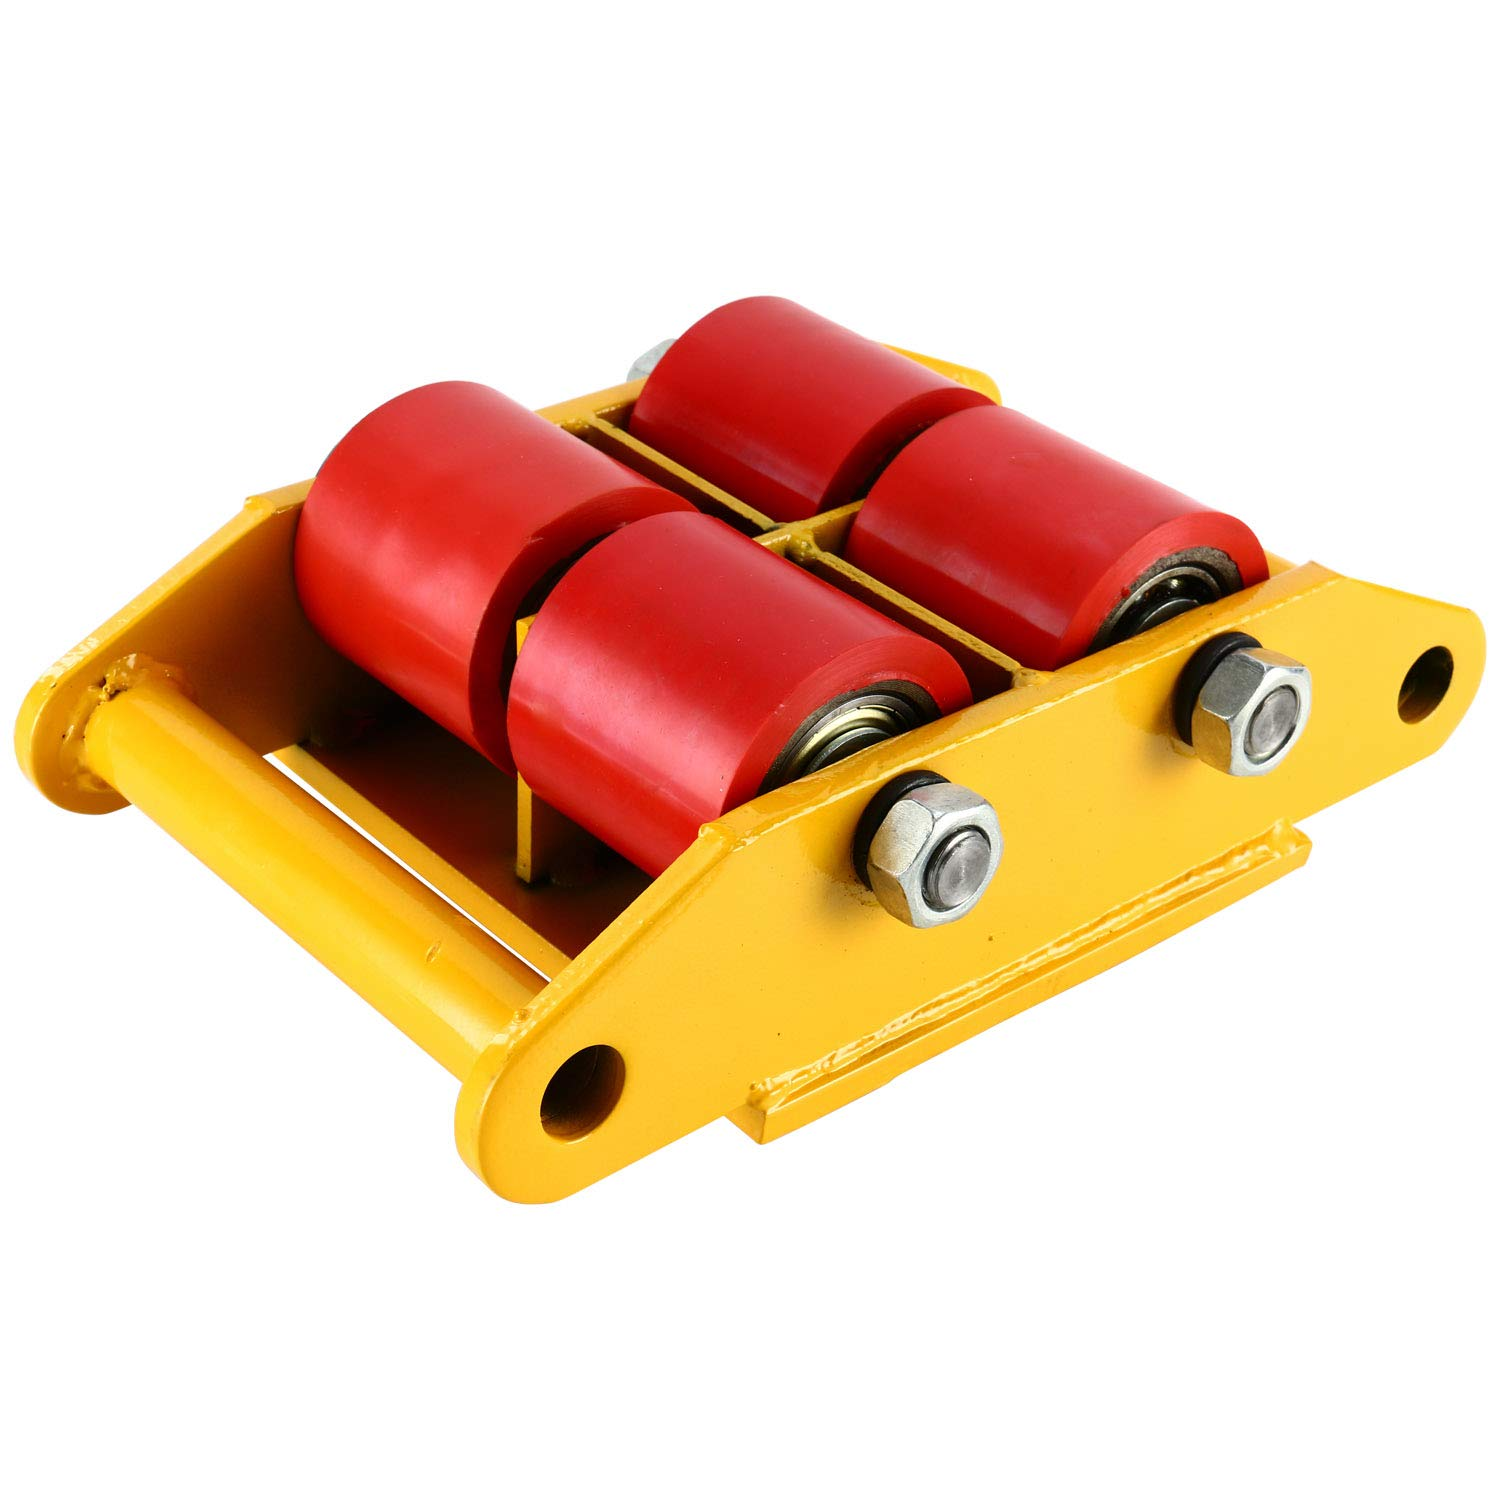 YaeTek Industrial Machinery Mover 13200 lbs 6 Tons Machinery Skate Dolly with 4 Rollers Cap 360 Degree Rotation (Yellow) by YAE TEK (Image #4)